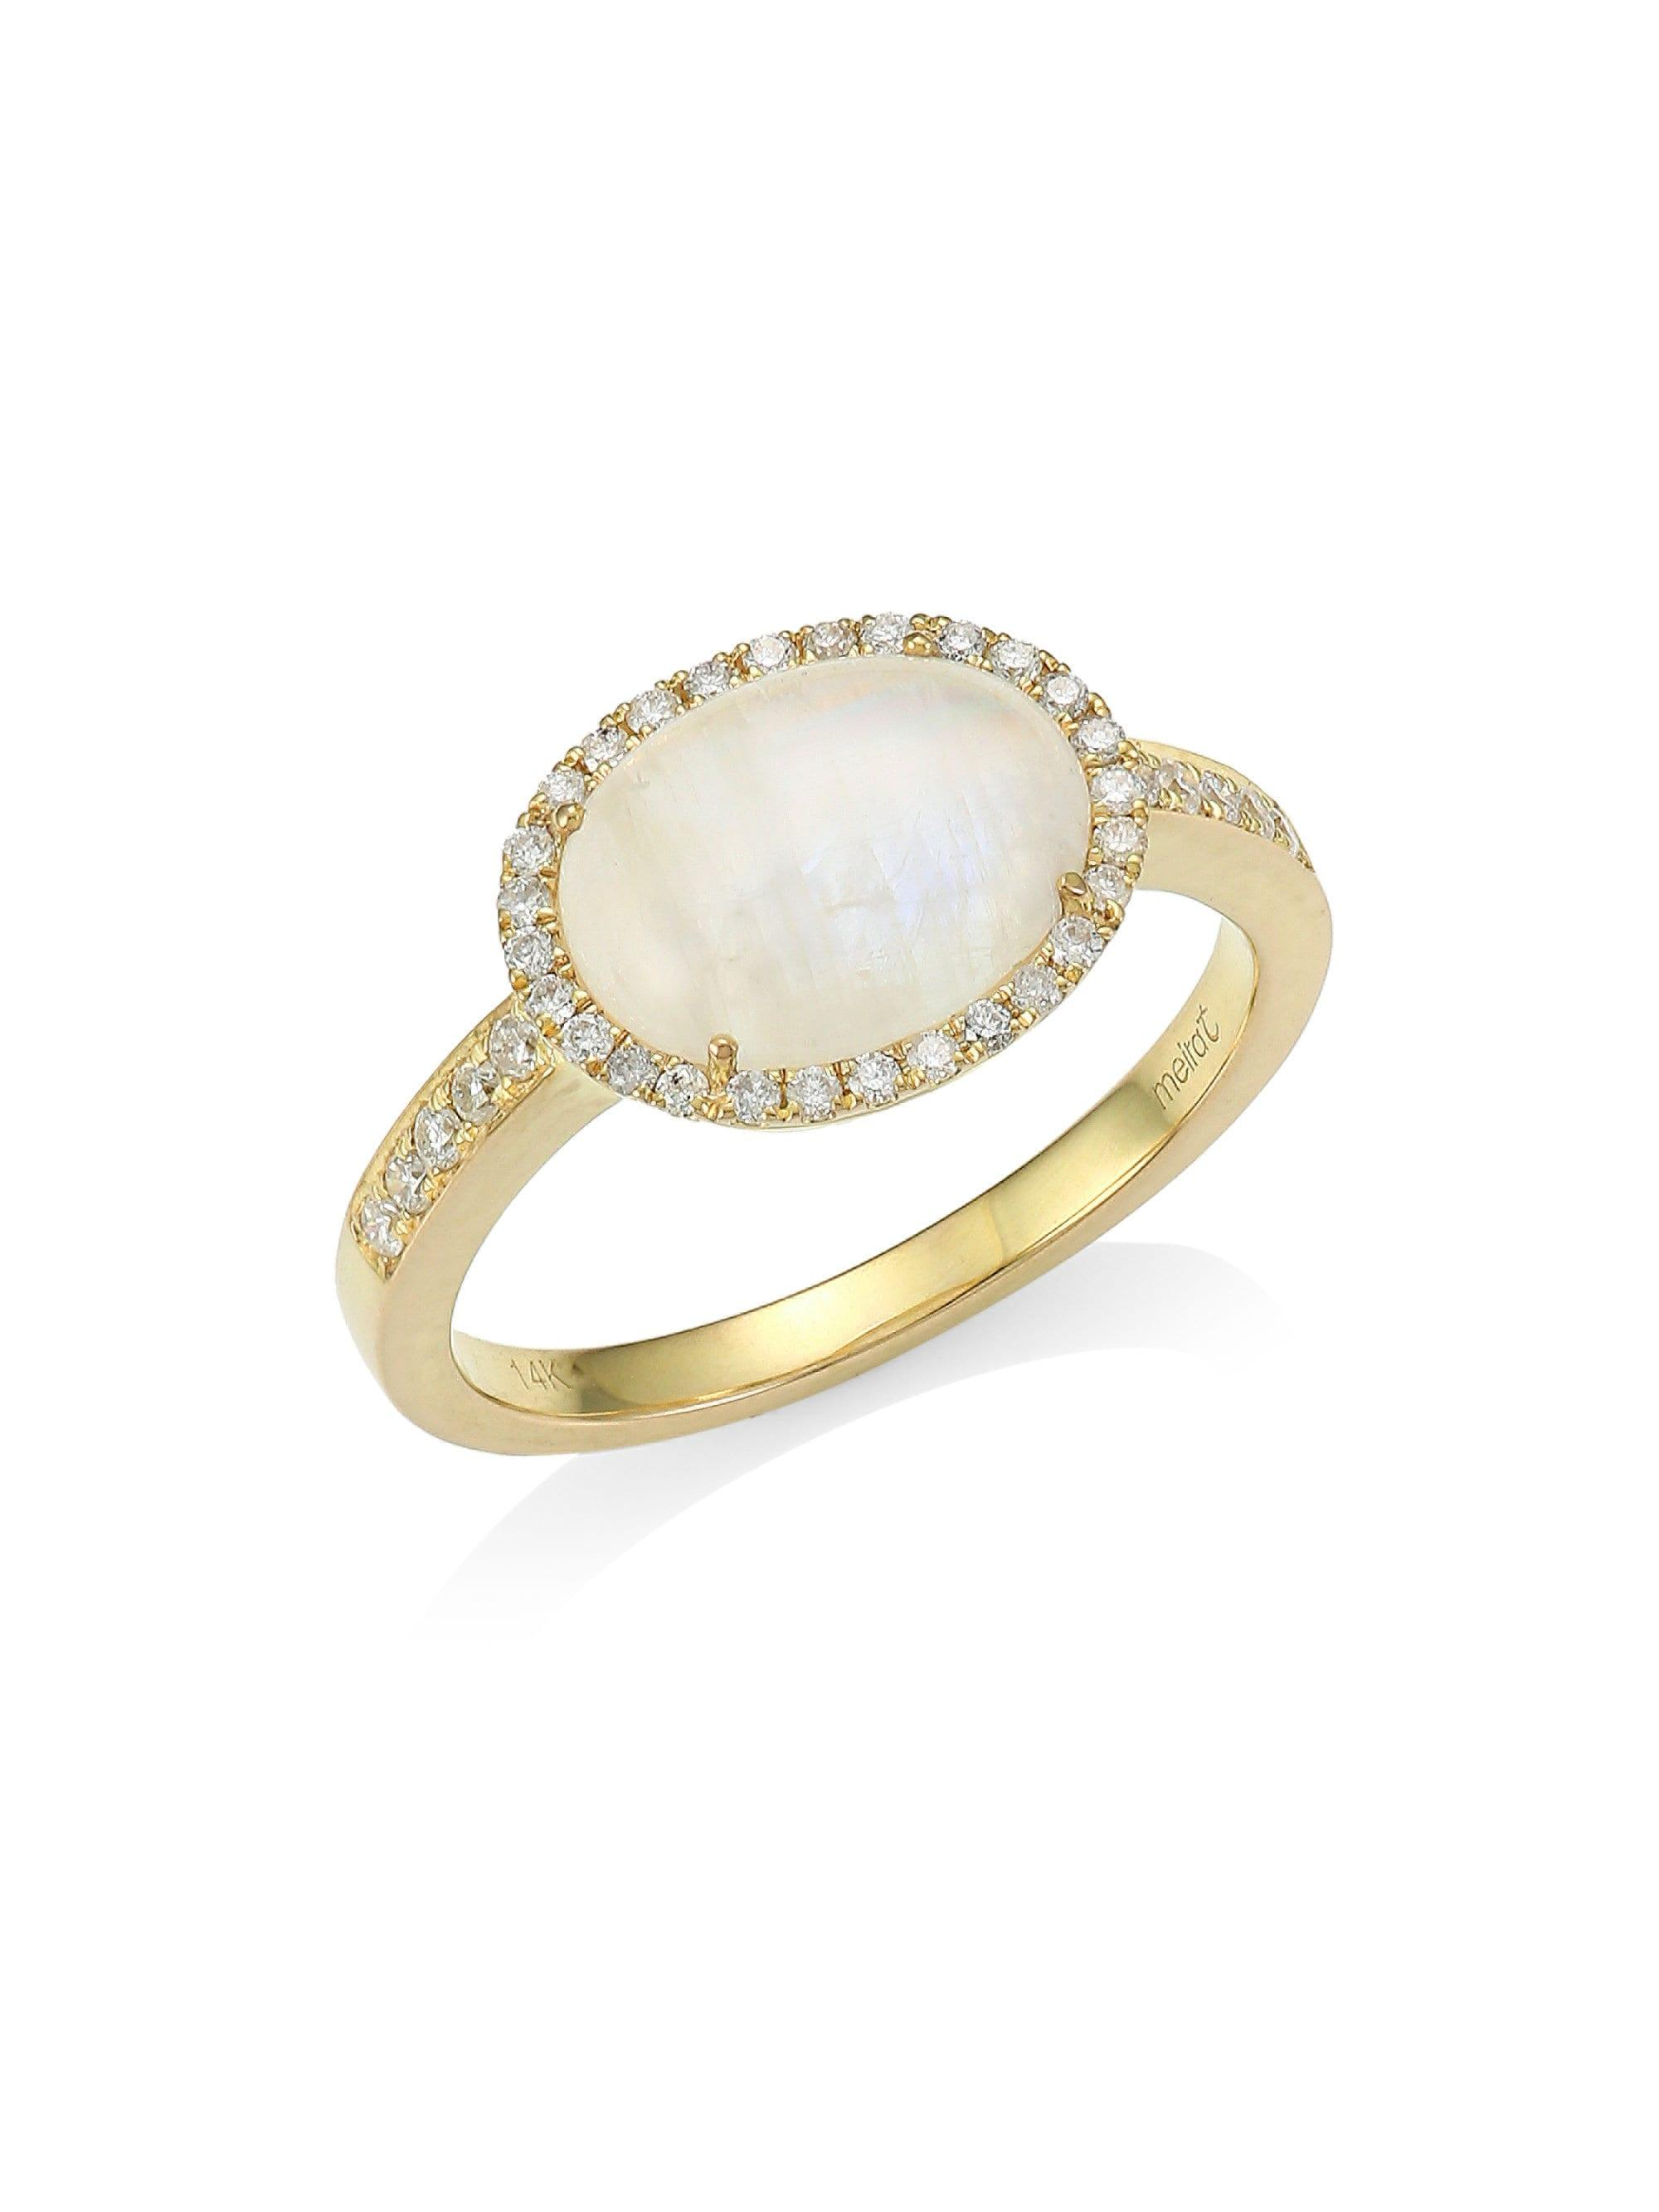 Meira T 14-Karat Yellow Gold, Diamond, and Rainbow Moonstone ring